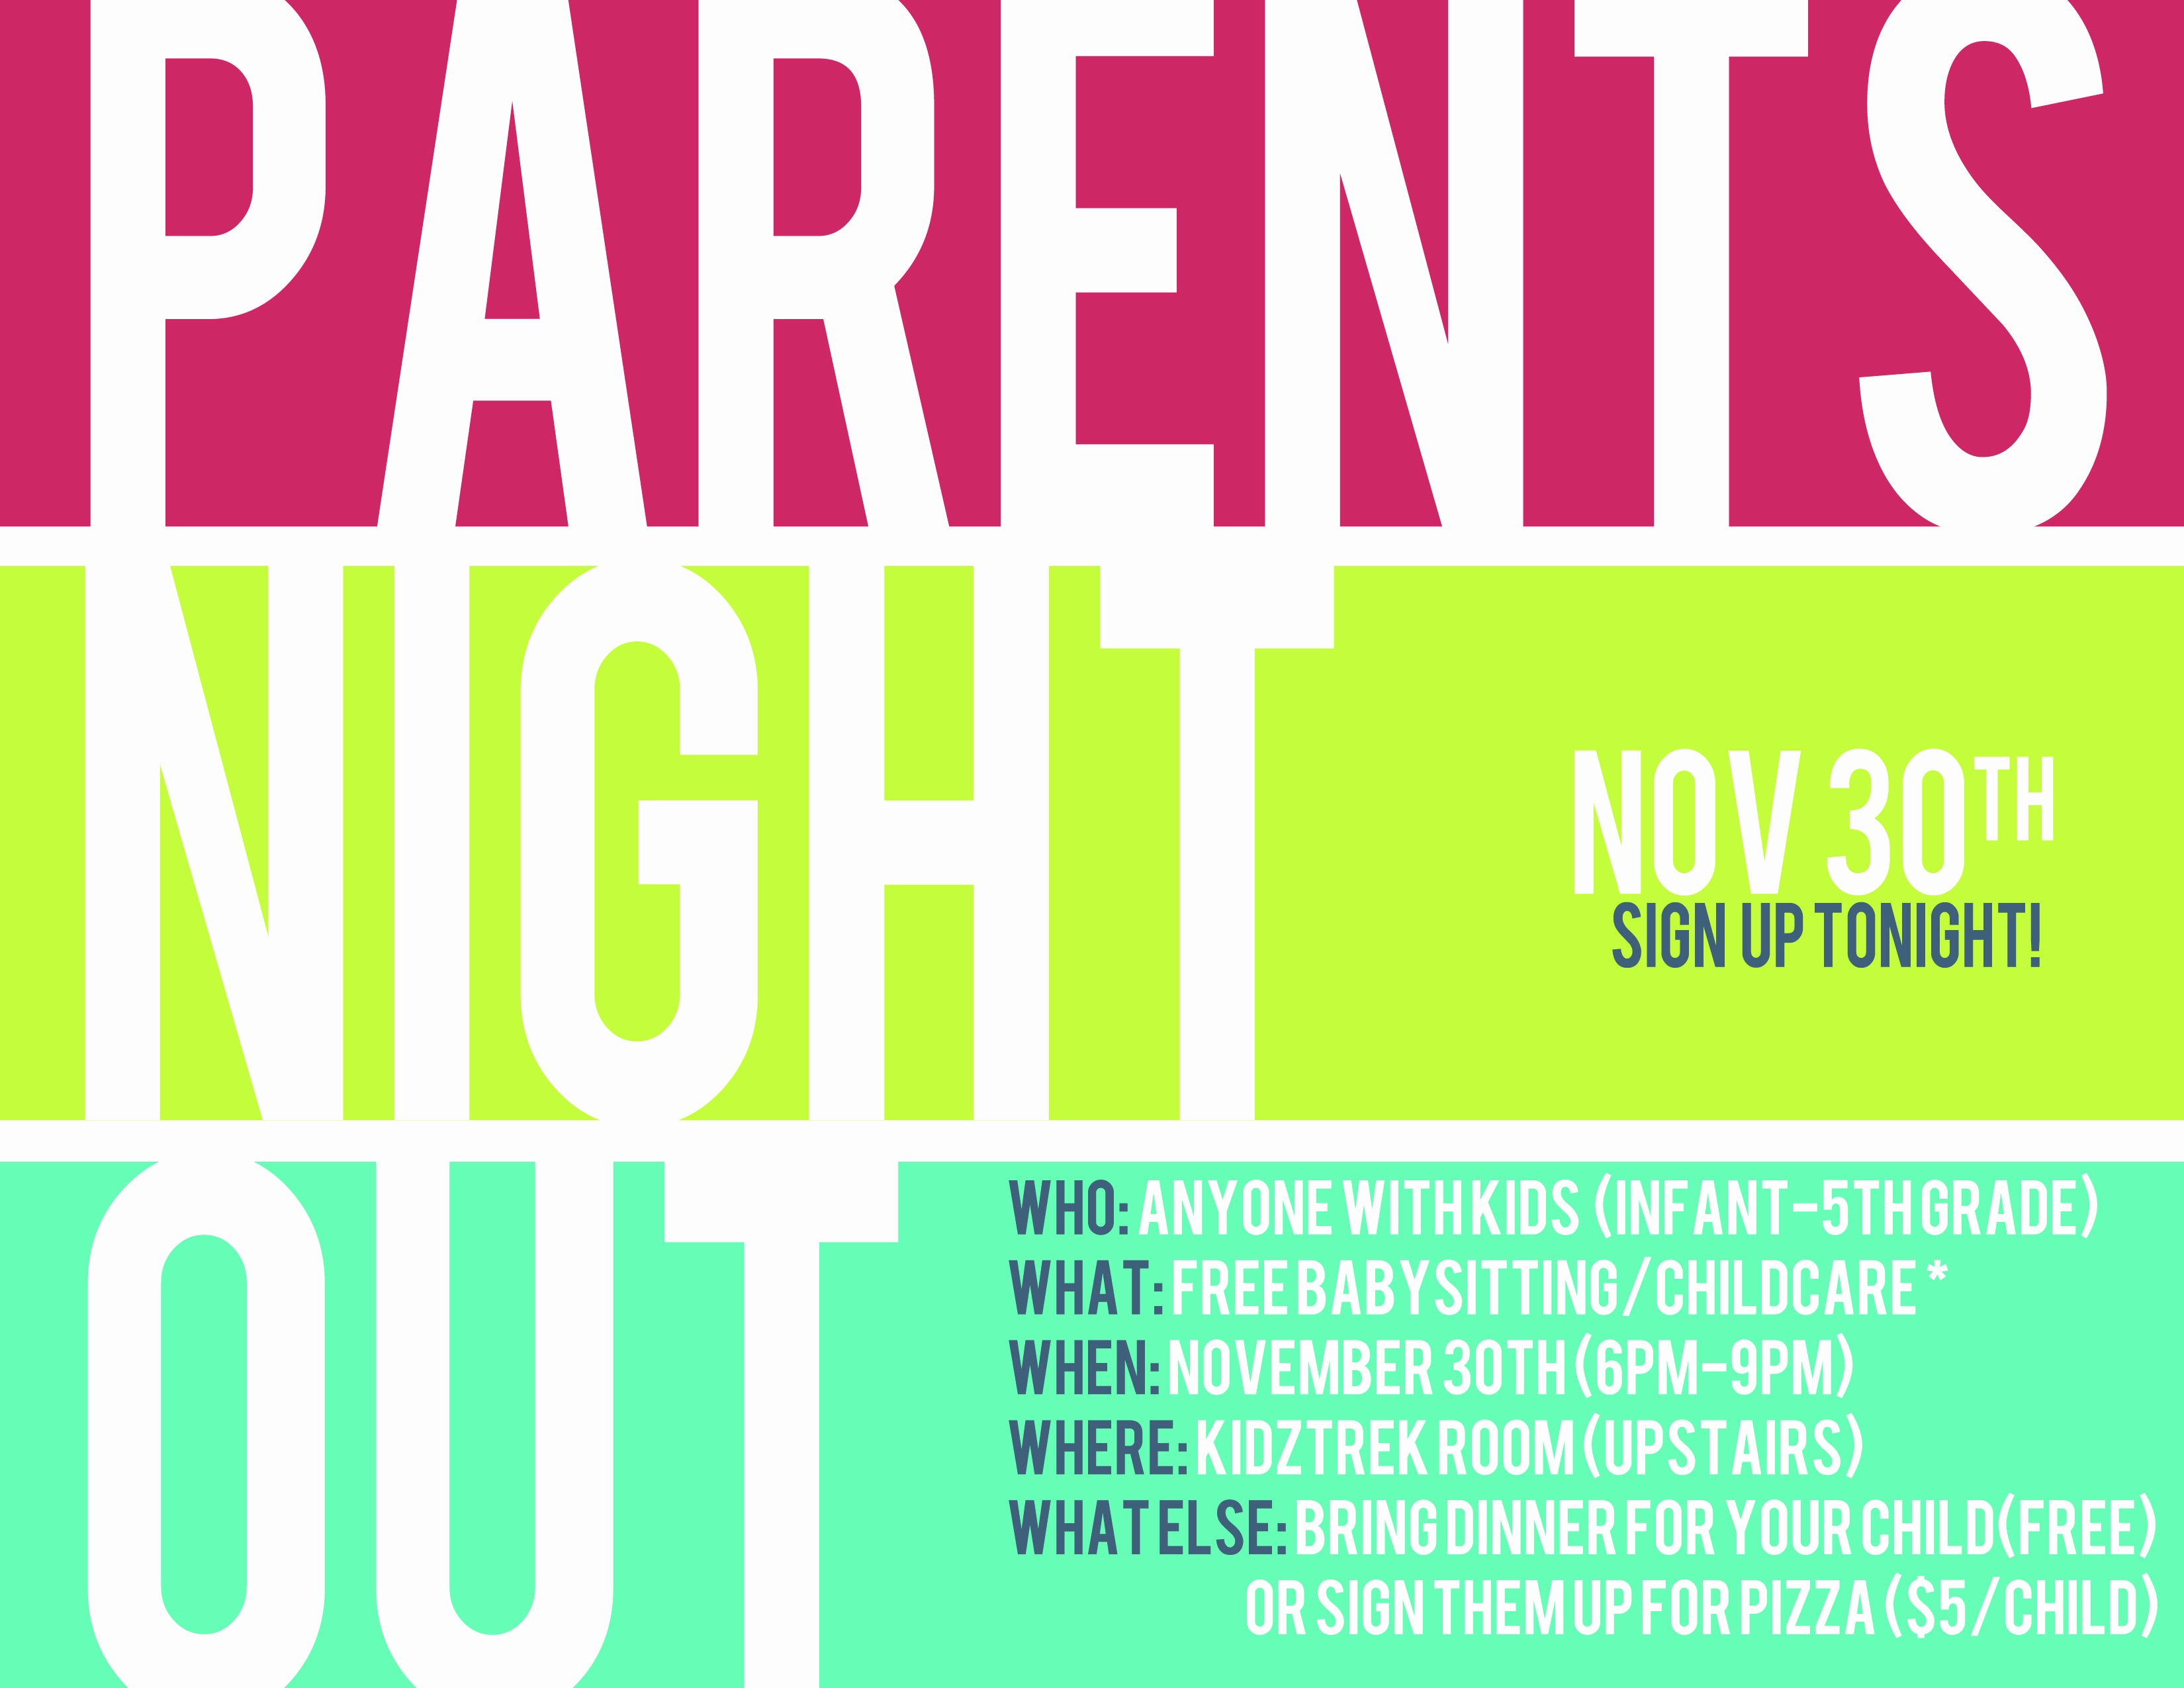 Parent Night Out Flyer Template Inspirational Parents Night Out Google Search